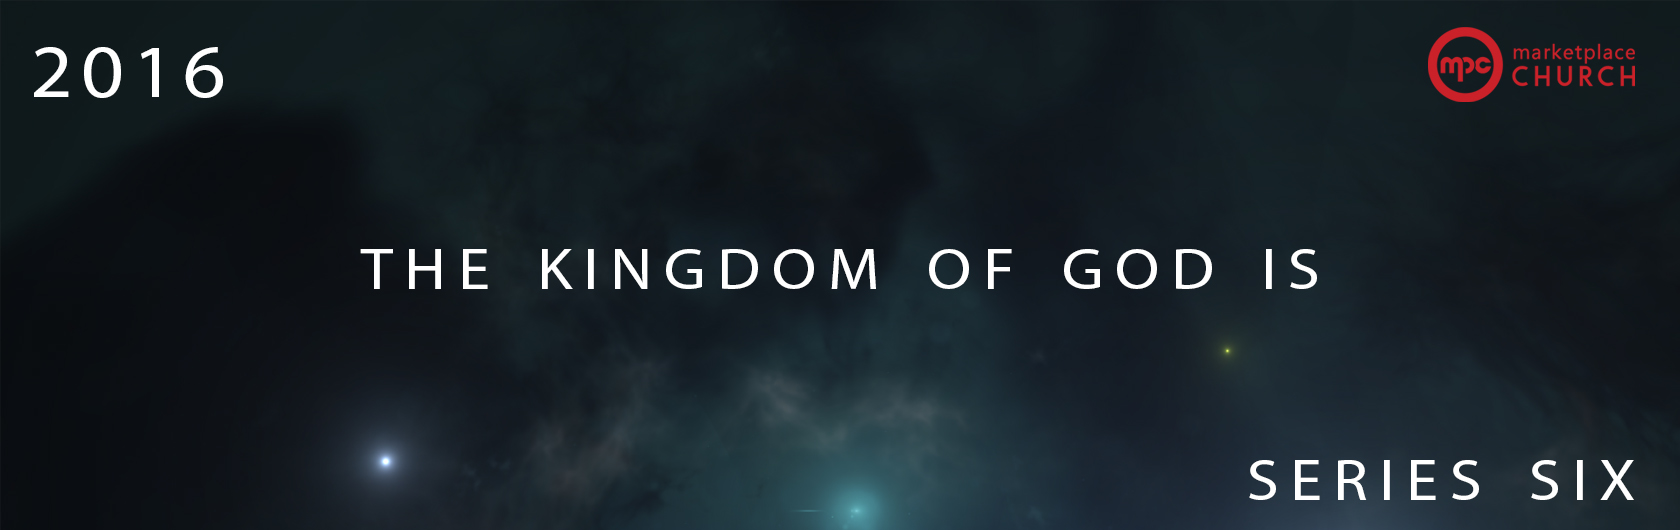 kingdom-of-god-web-banner